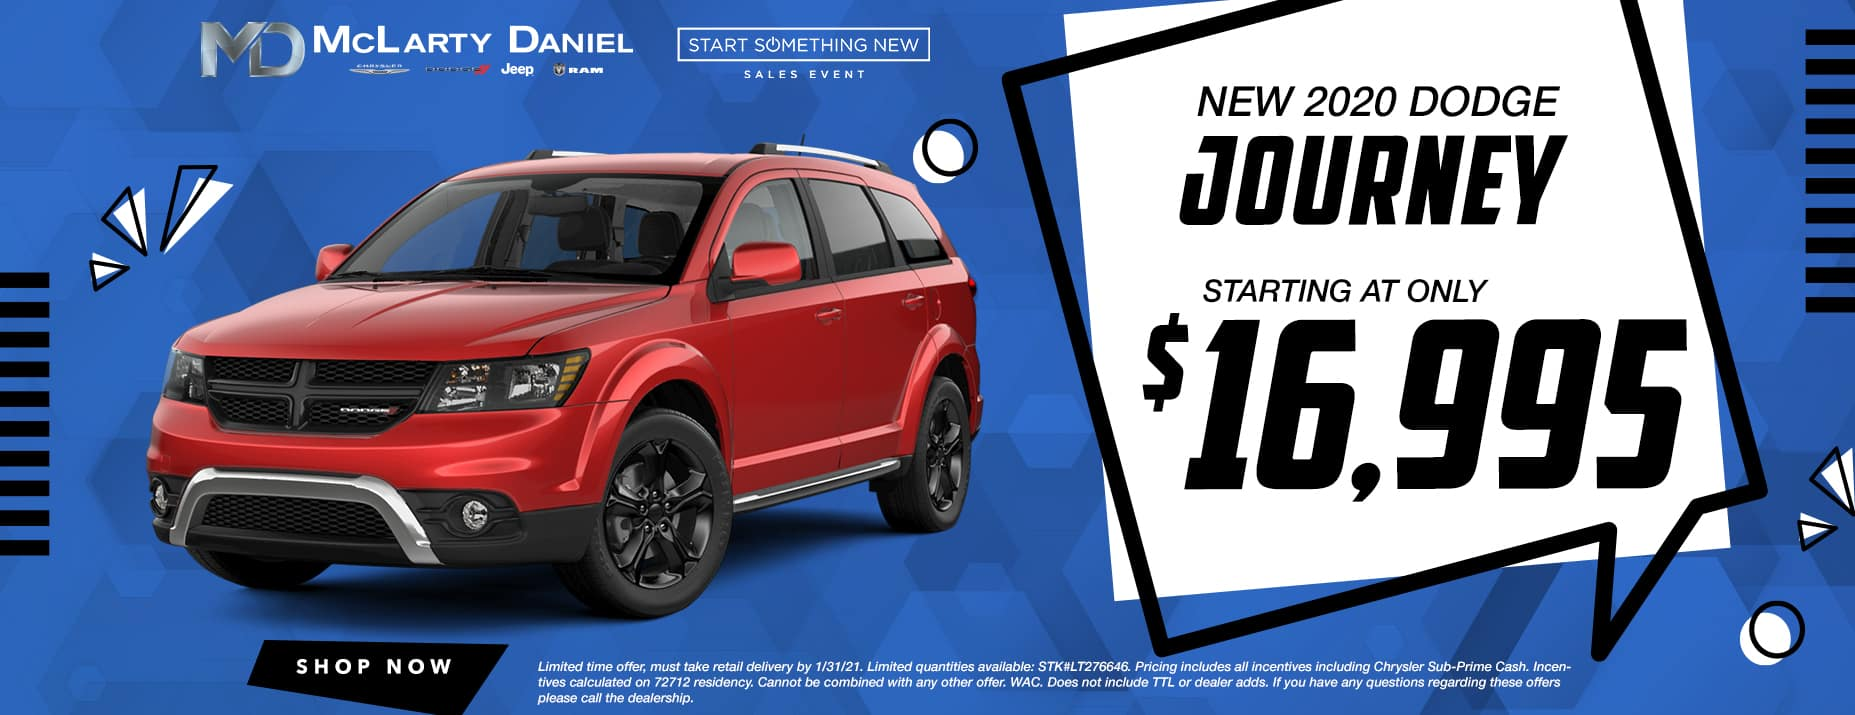 NEW 2020 JOURNEY STARTING AT ONLY $16,995!